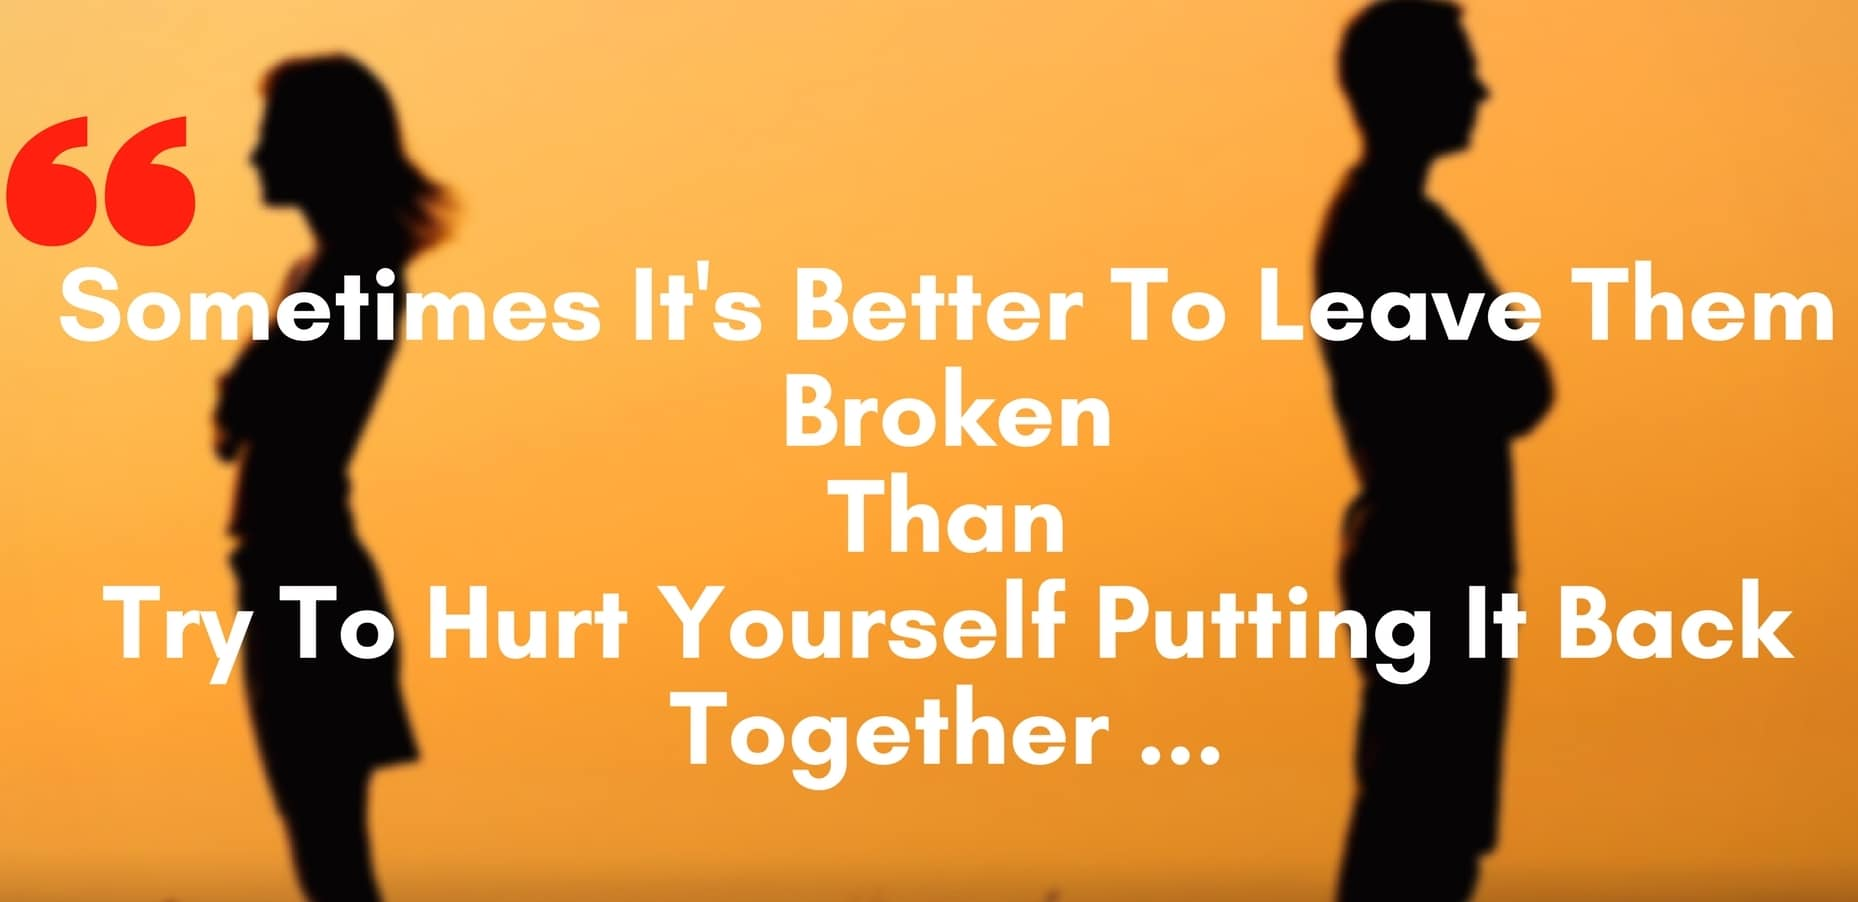 Breakup status 100 breakup status and sad breakup quotes in english breakup status thecheapjerseys Image collections